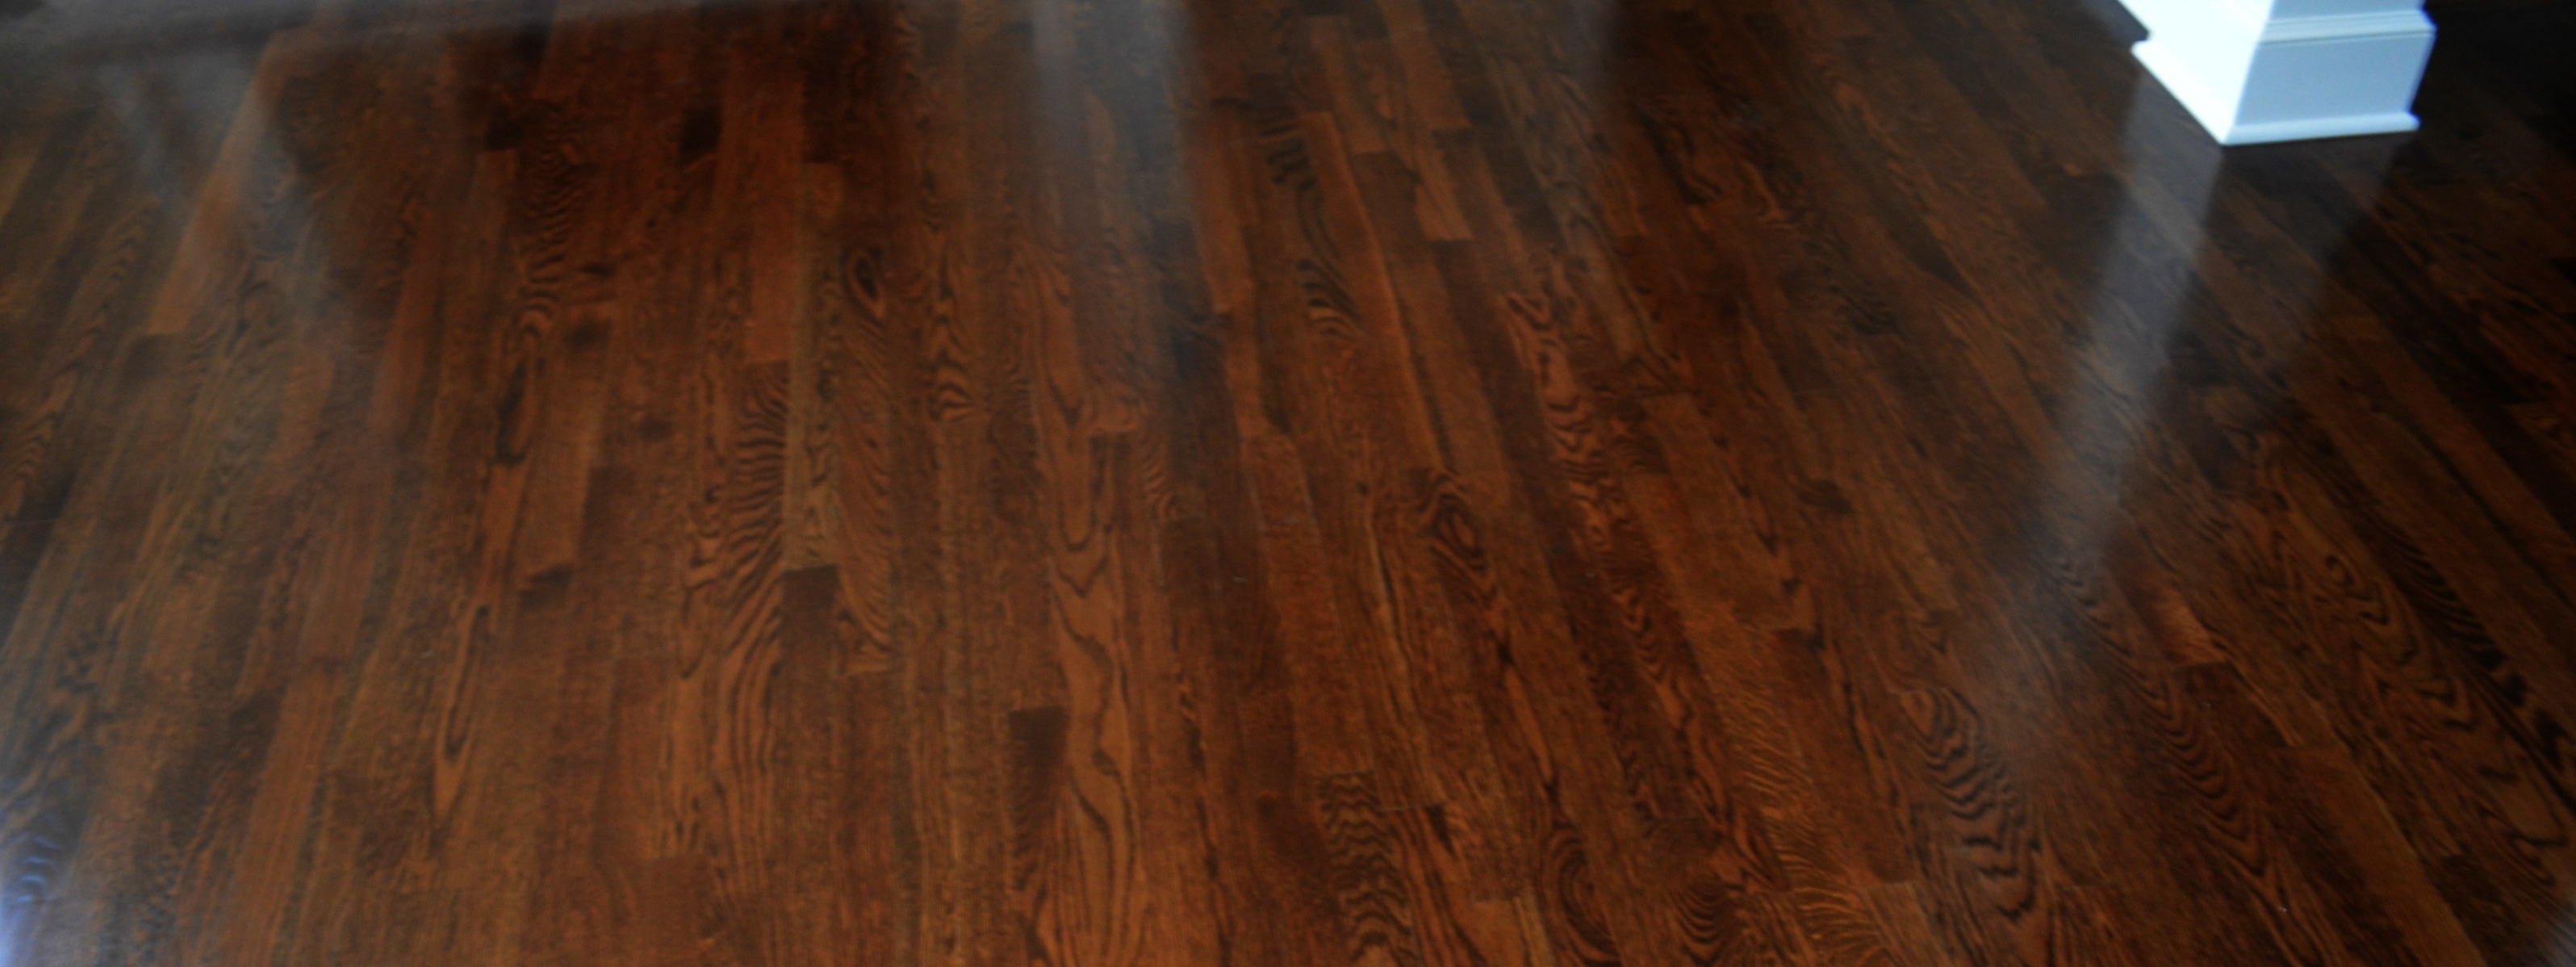 Hardwood Flooring Cork Bamboo Reclaimed Wood Kansas City